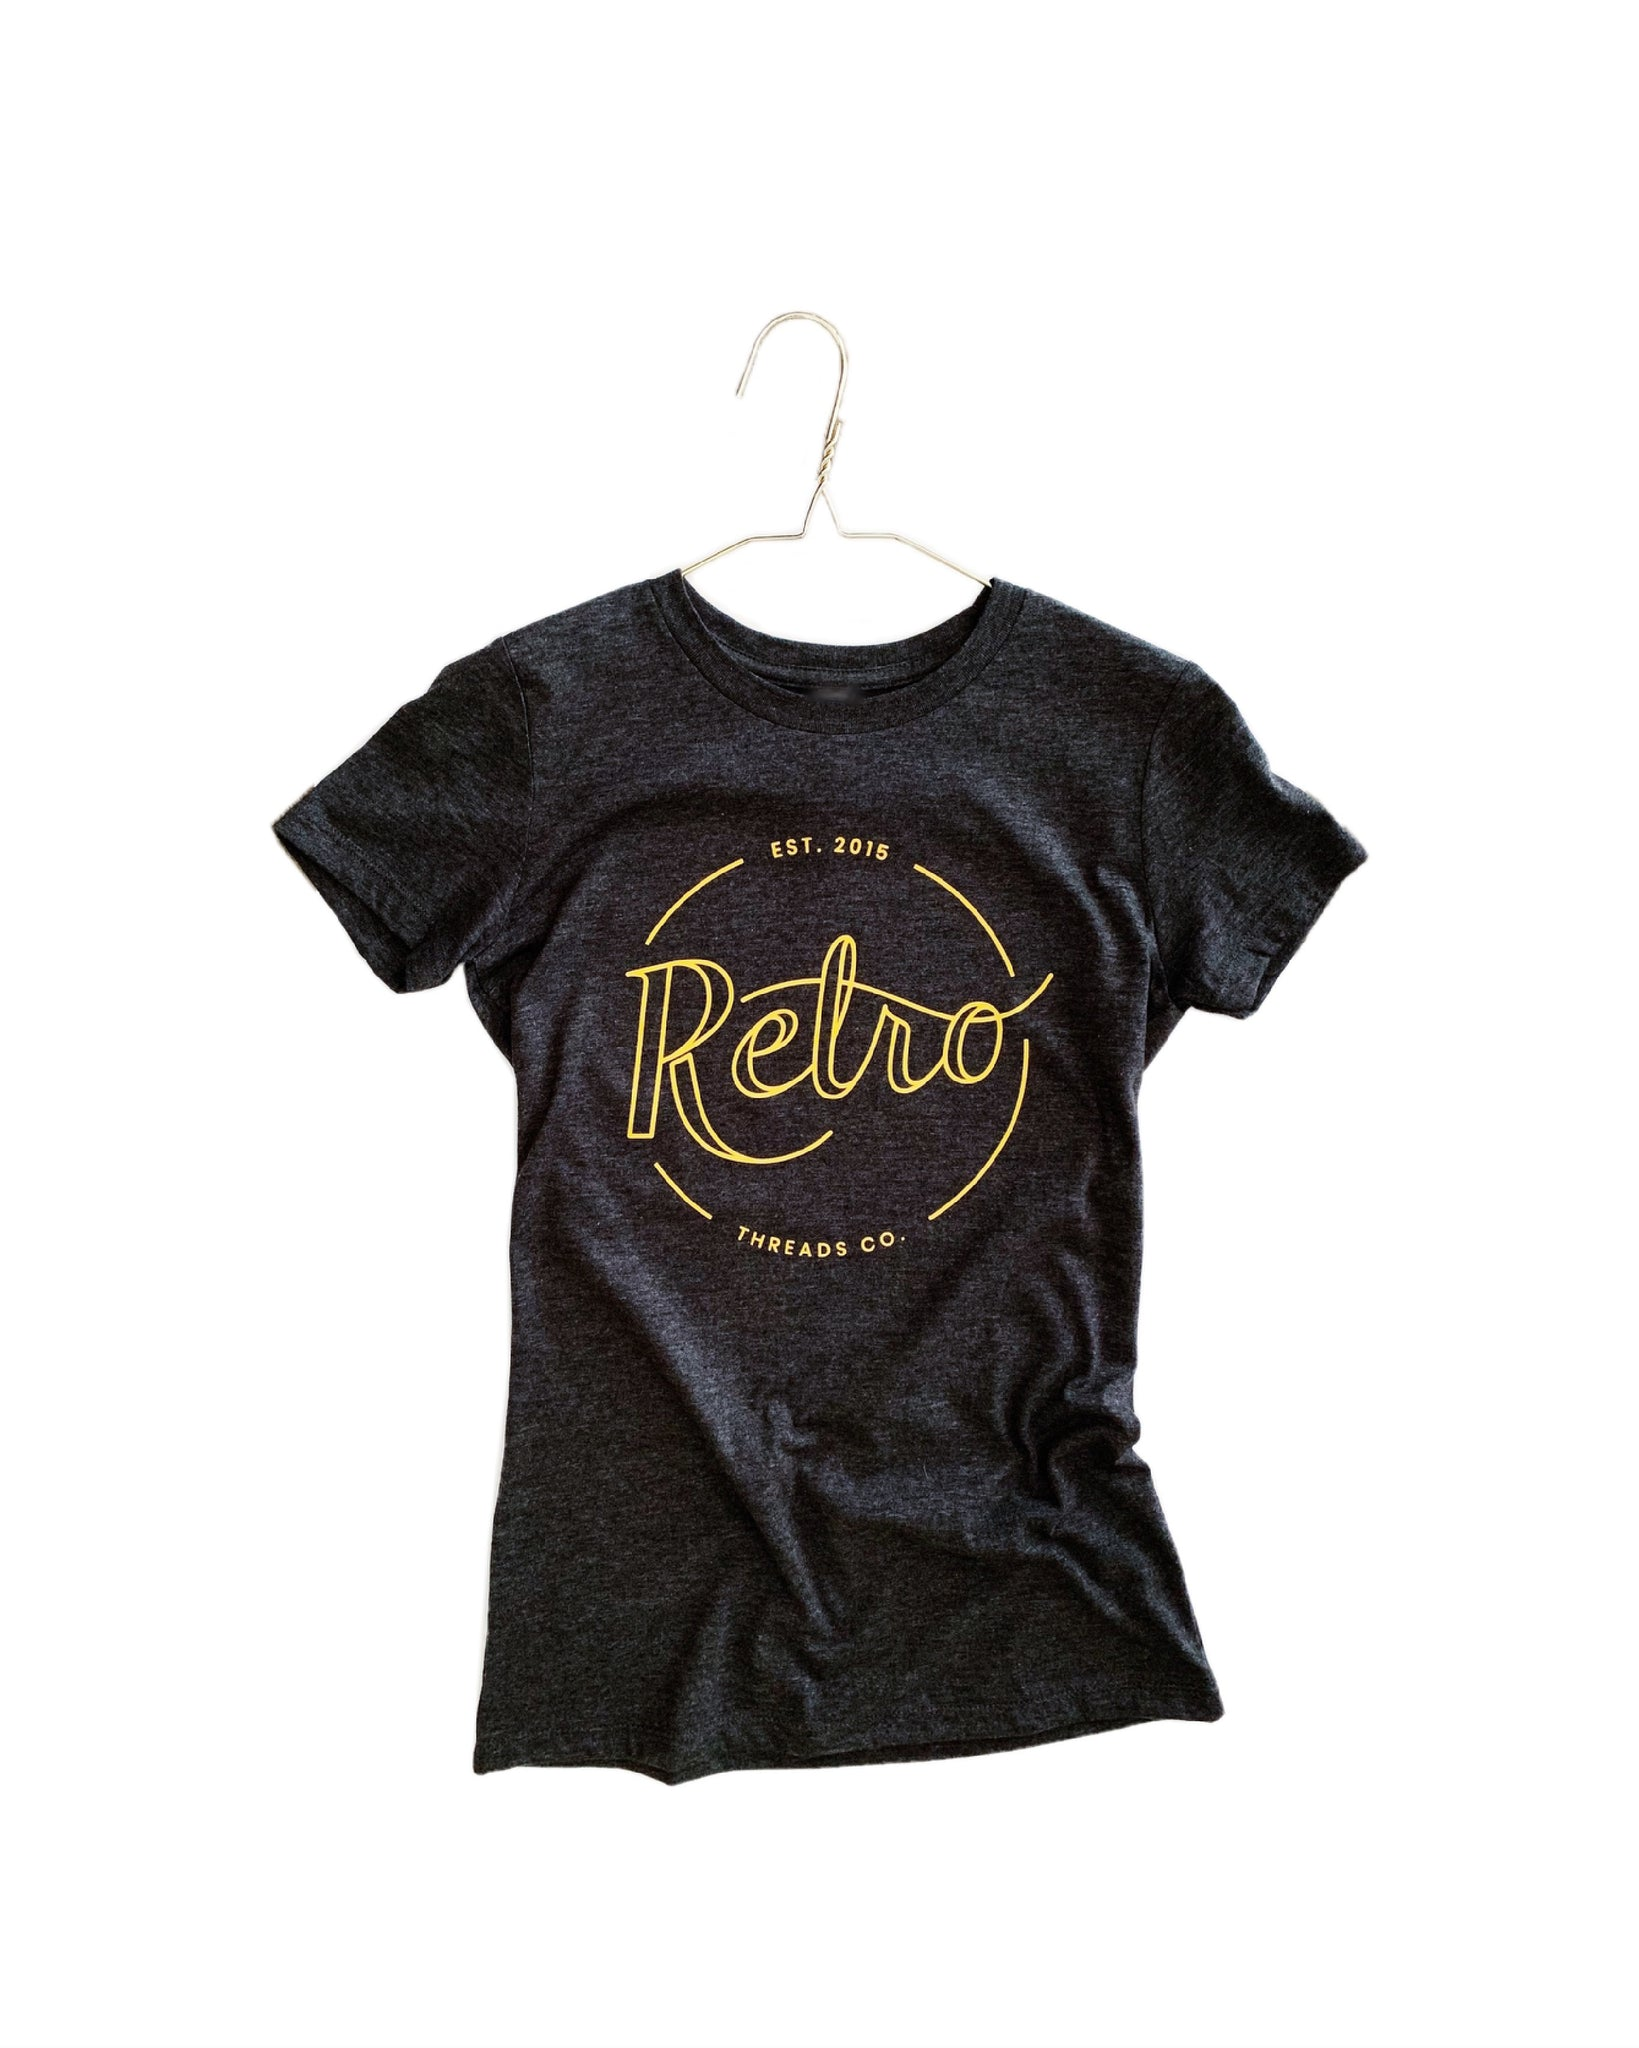 soft, comfortable, woman's graphic t-shirt. Vintage style logo, with mustard lettering. Made by retro threads co